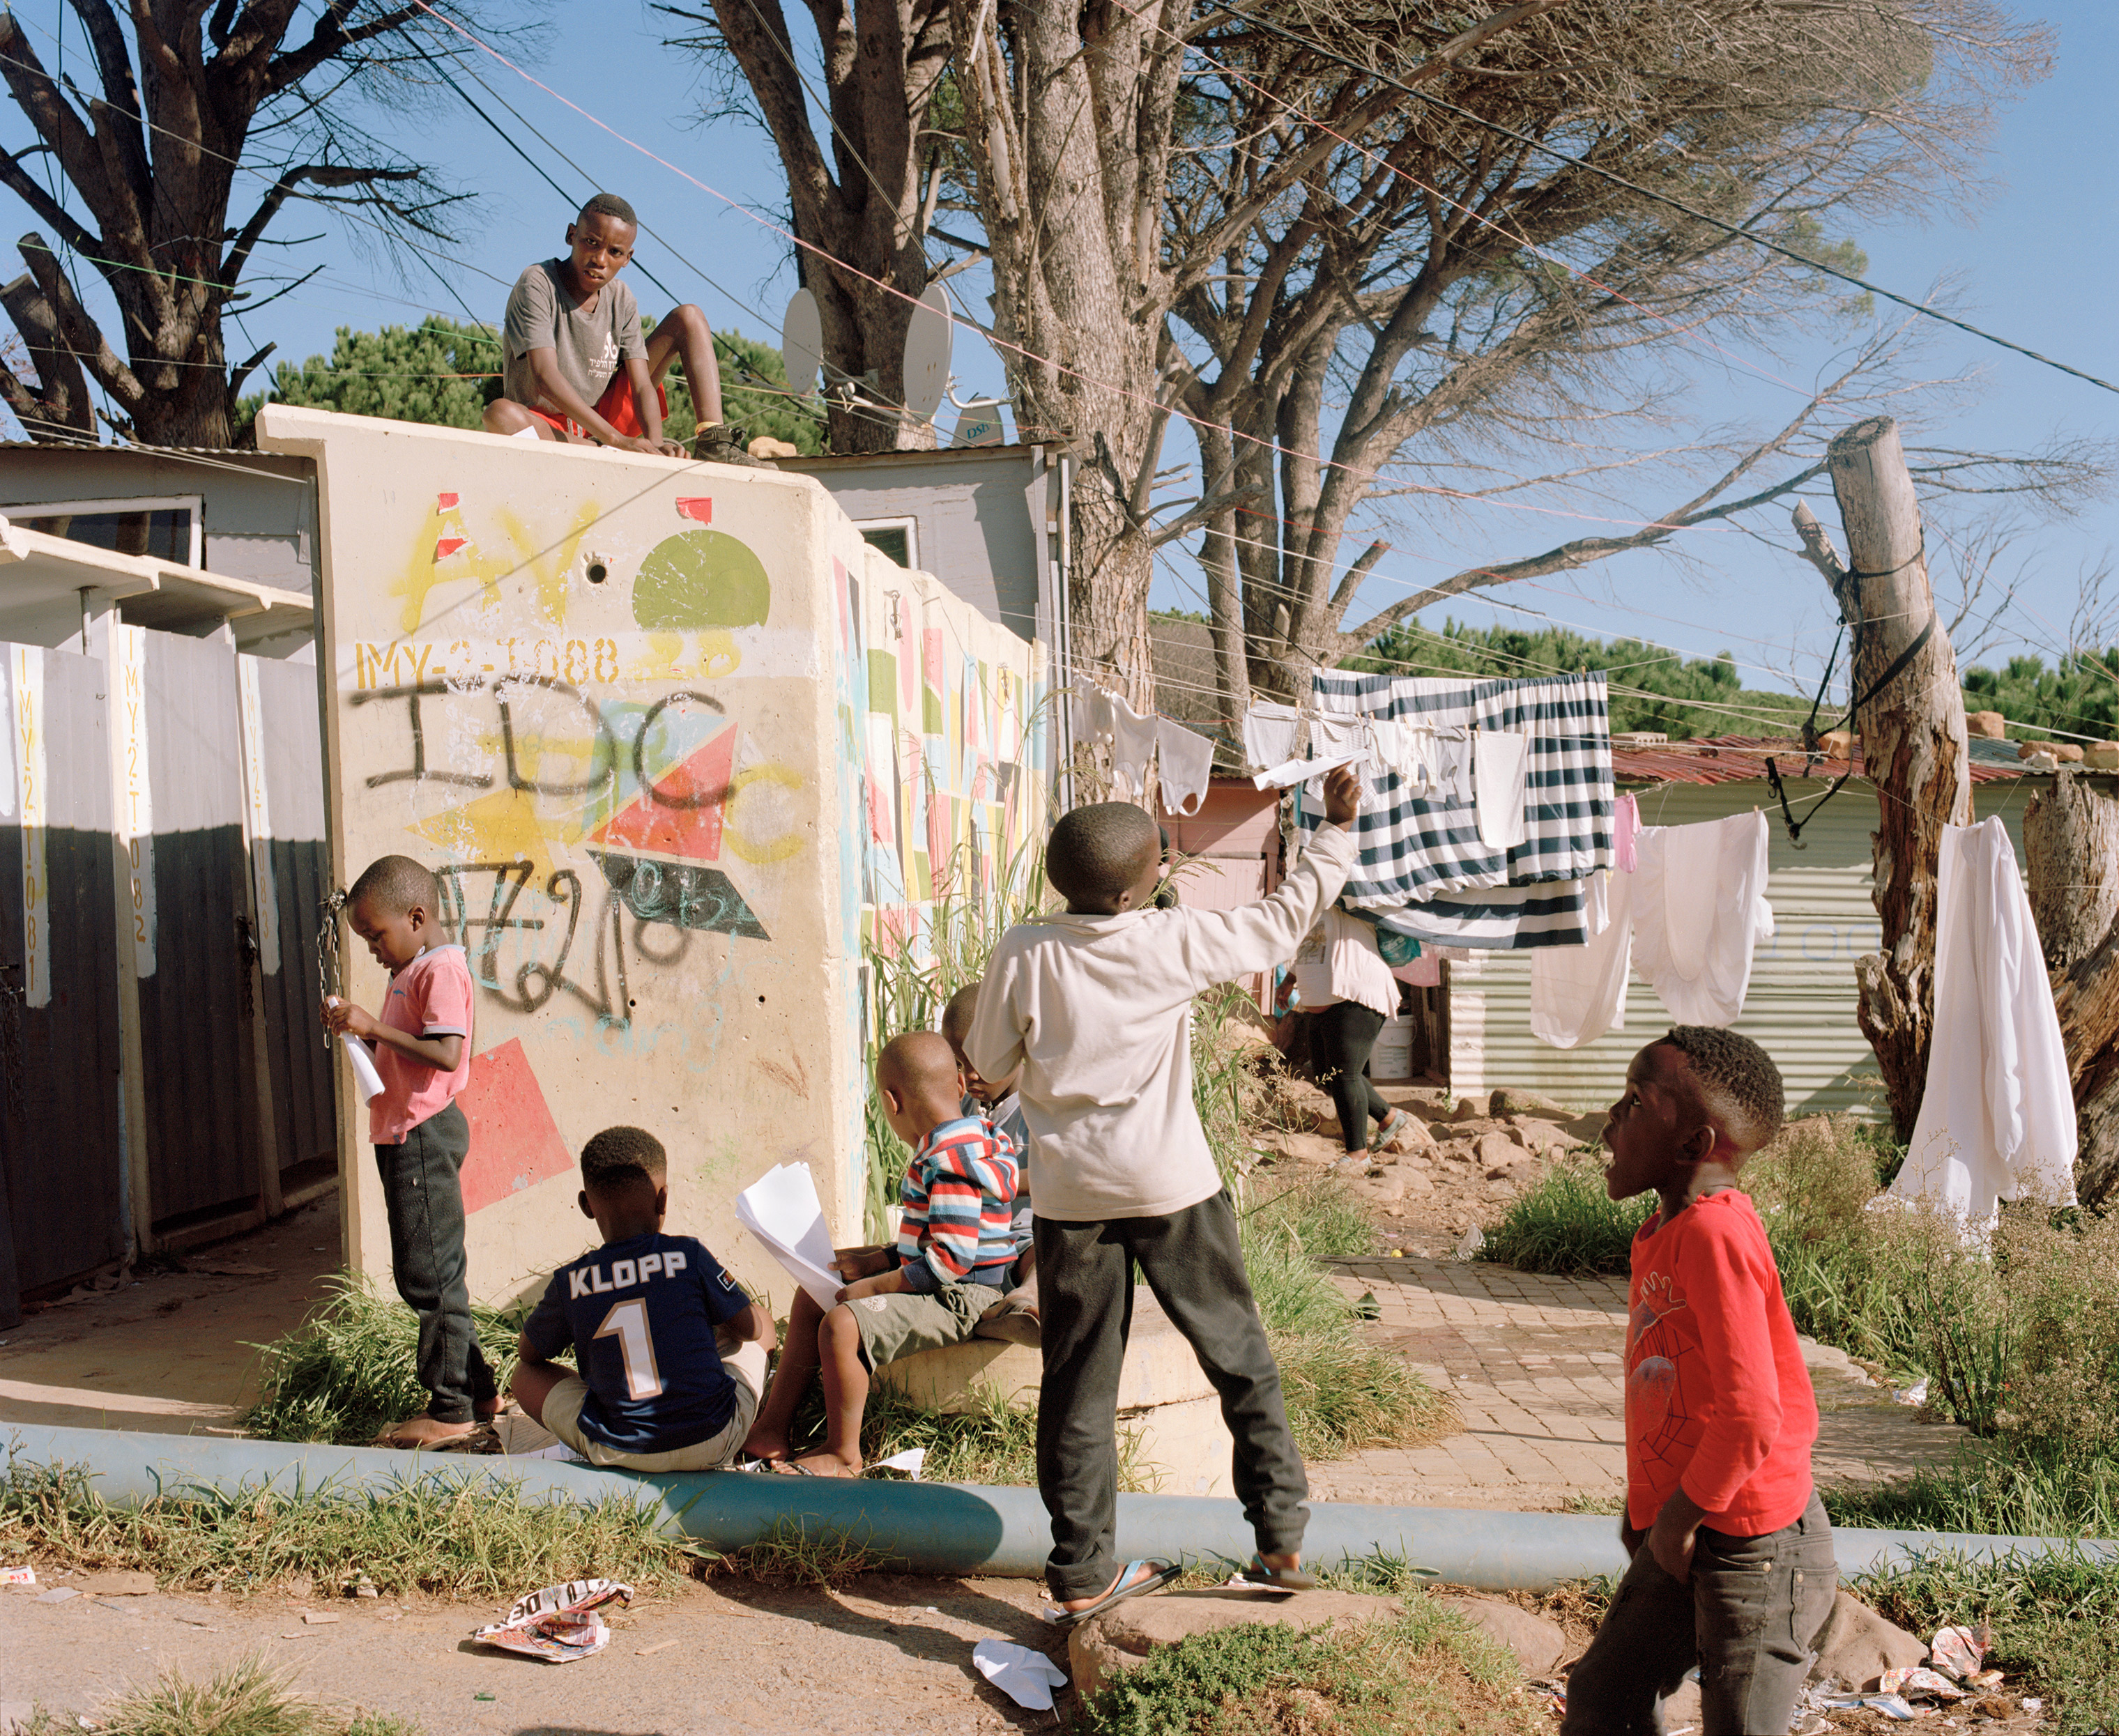 There are 2,700 informal settlements like Imizamo Yethu across the country.